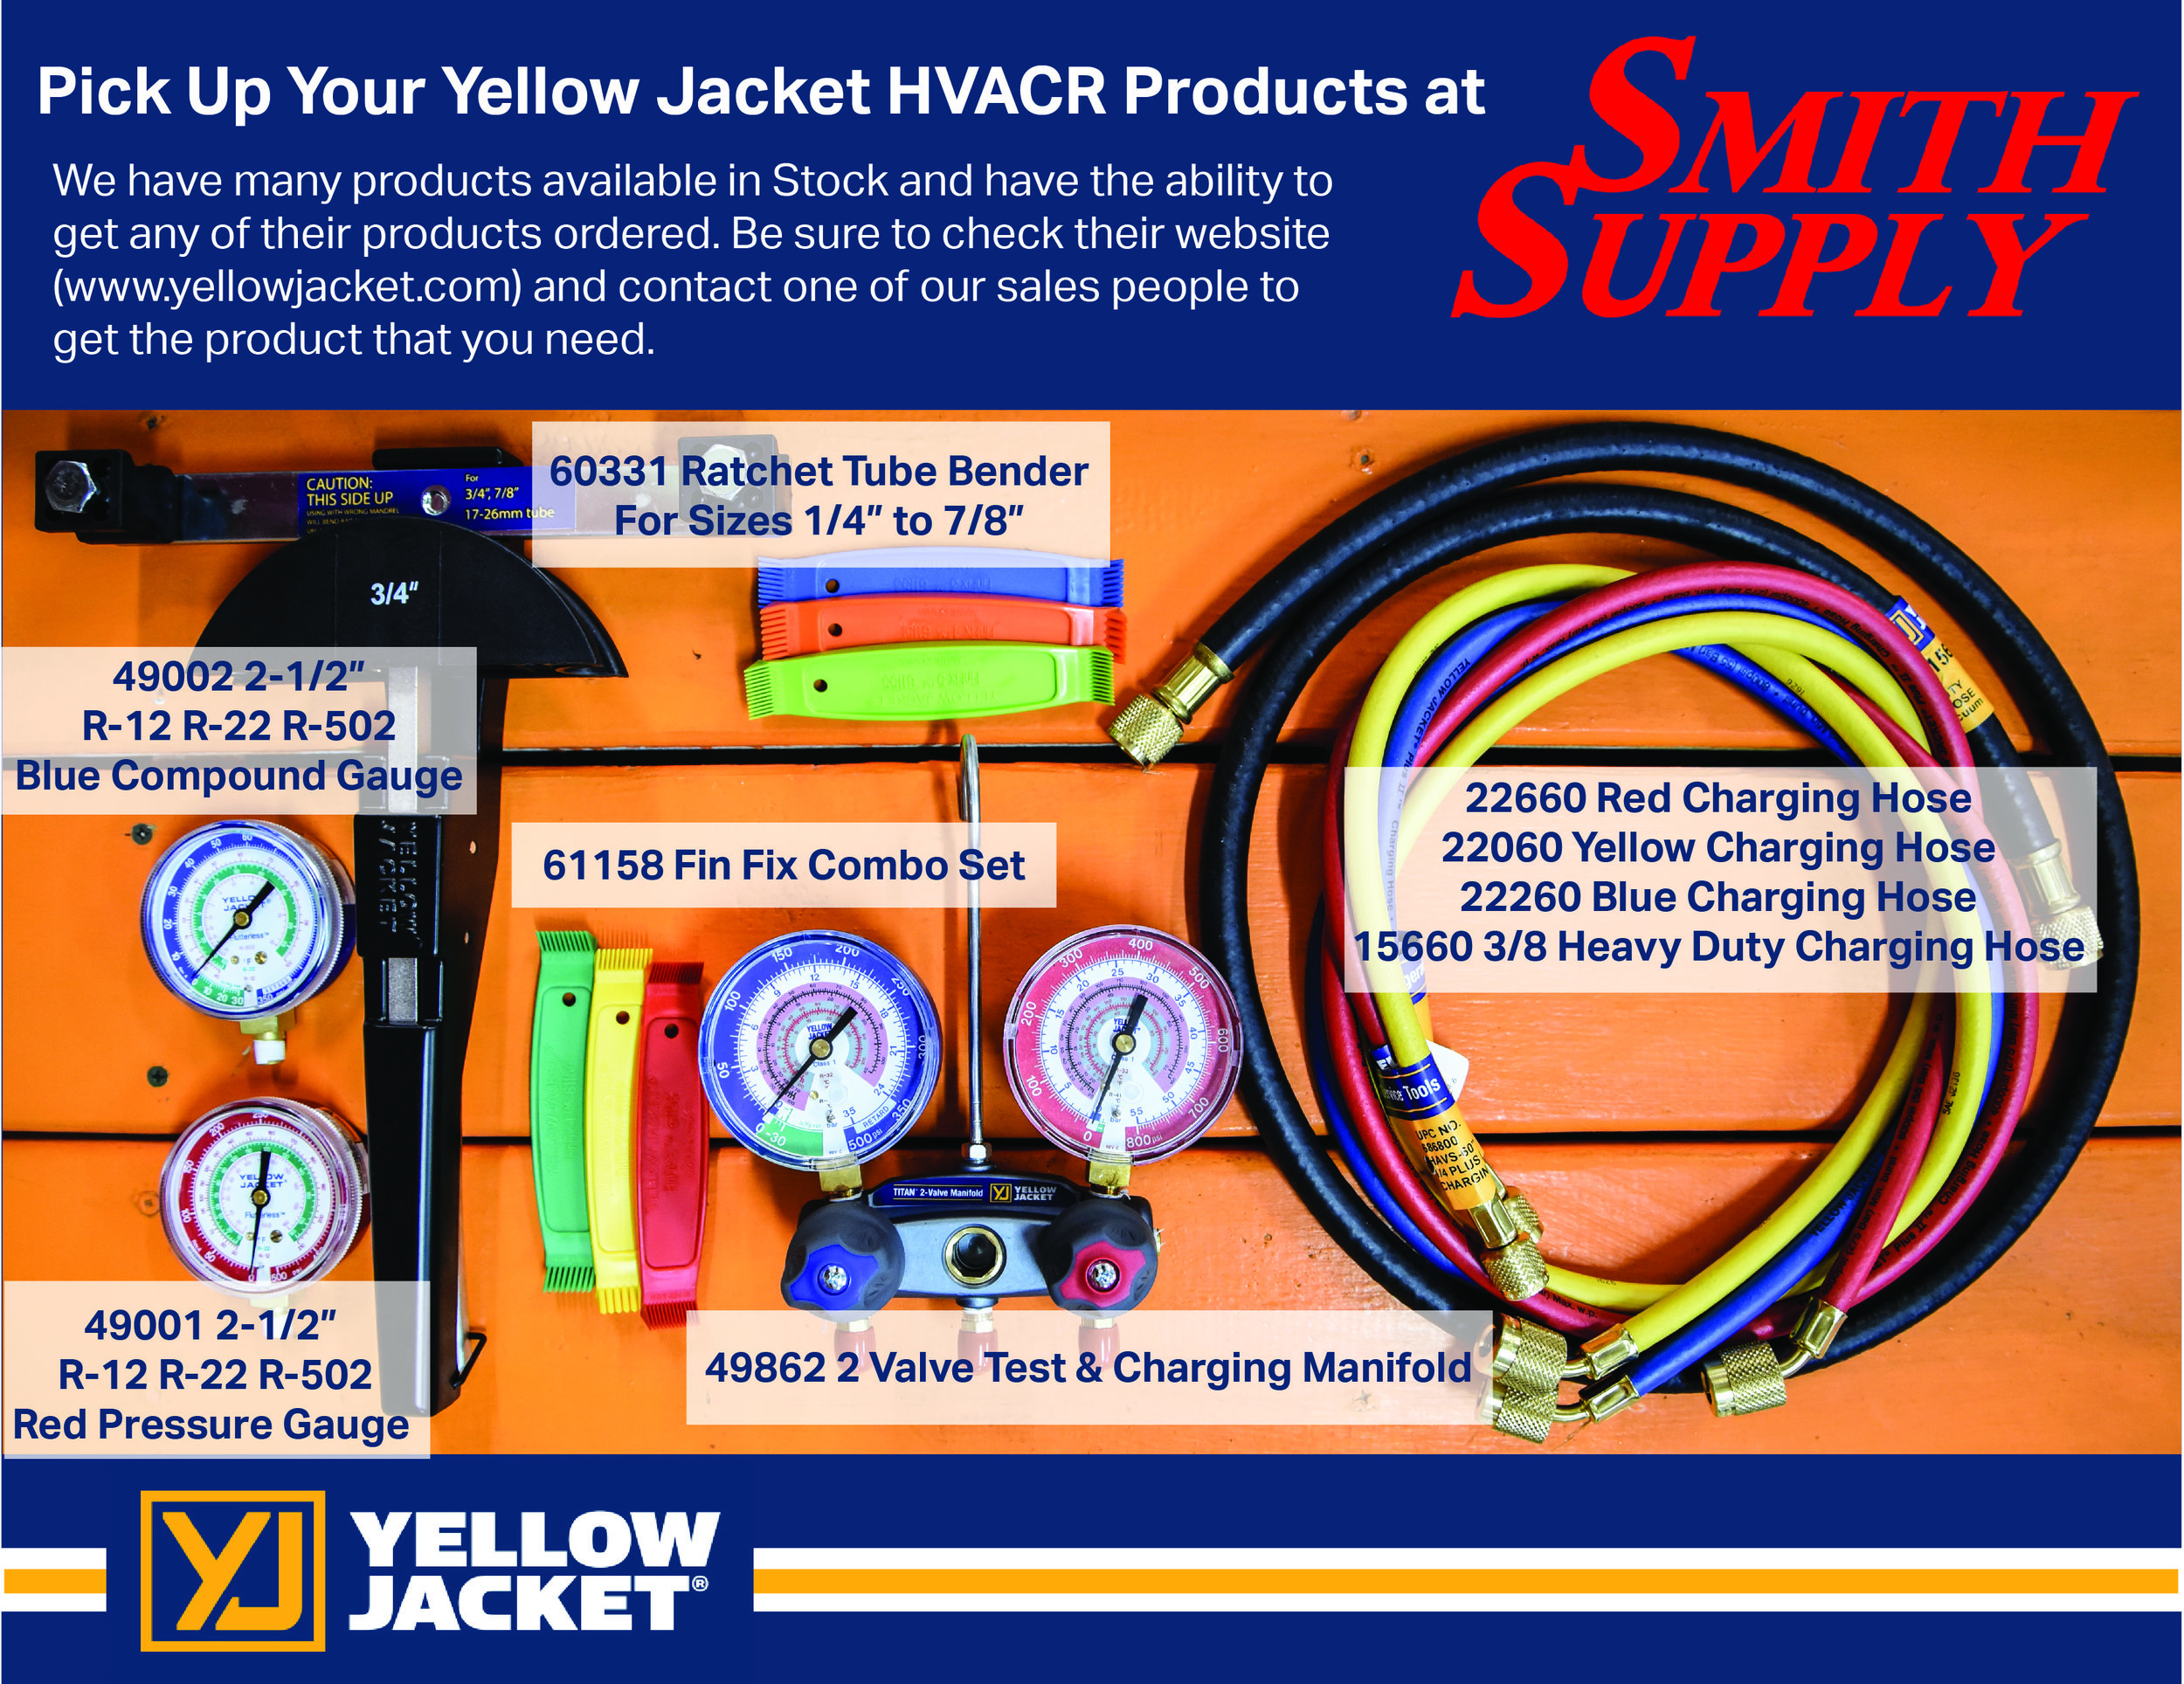 Smith Supply offers a variety of Yellow Jacket HVACR products. Find more of their products on their  website . We are able to order any of their products. Contact one of our sales people to get the HVACR products you need for your next project.